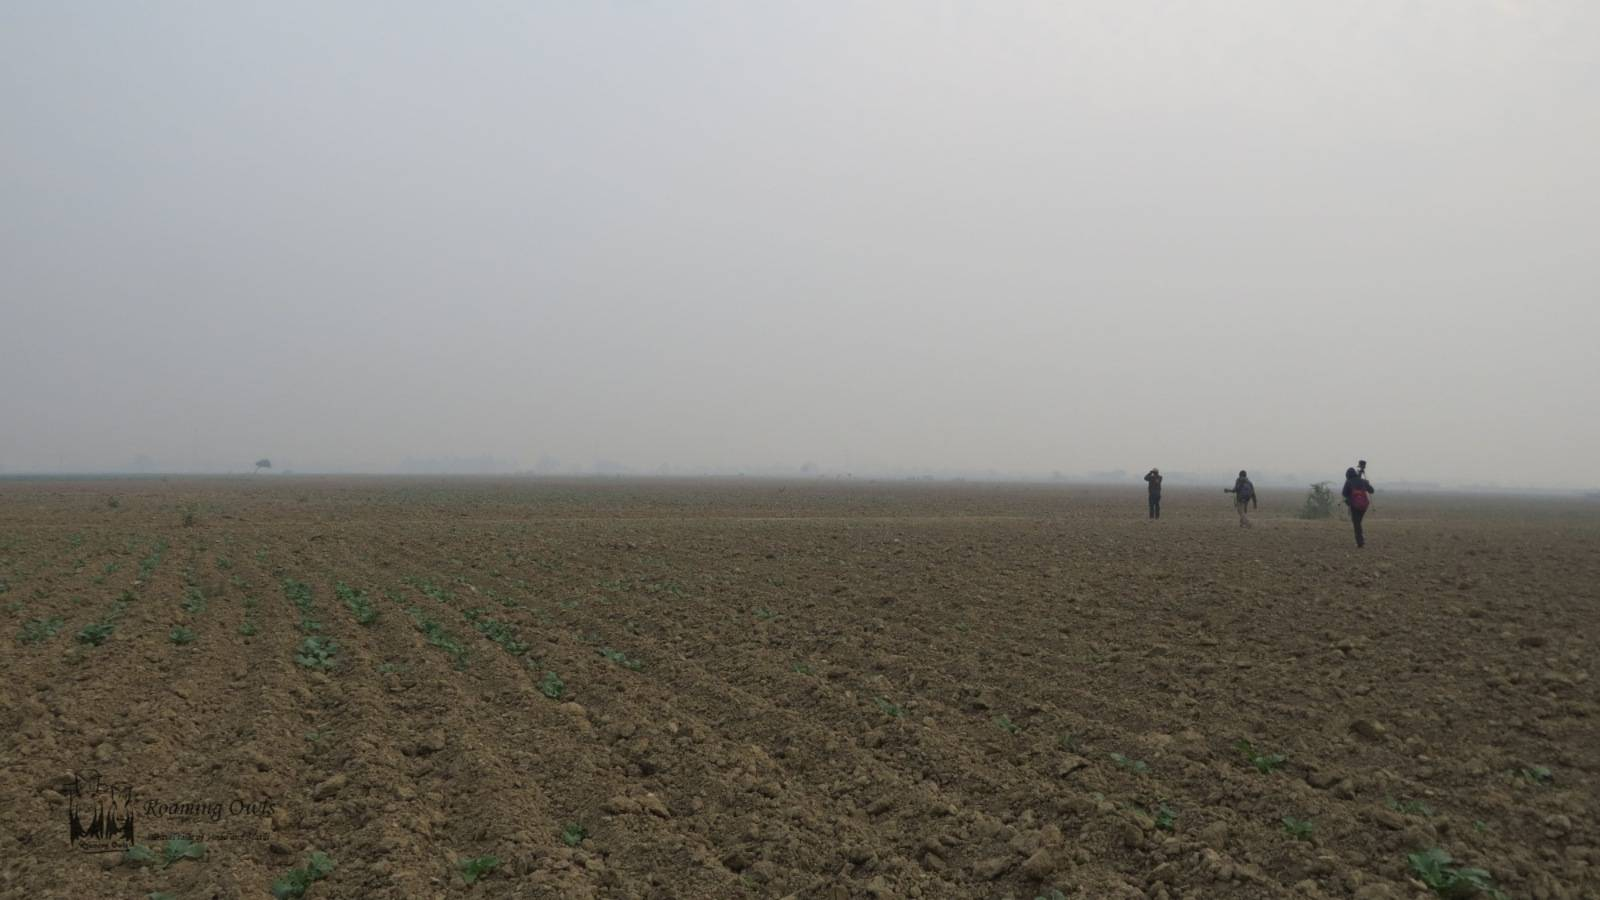 Indian Courser Search,Rajasthan barren agricultural field,Bharatpur Bikaner,Keoladeo national park